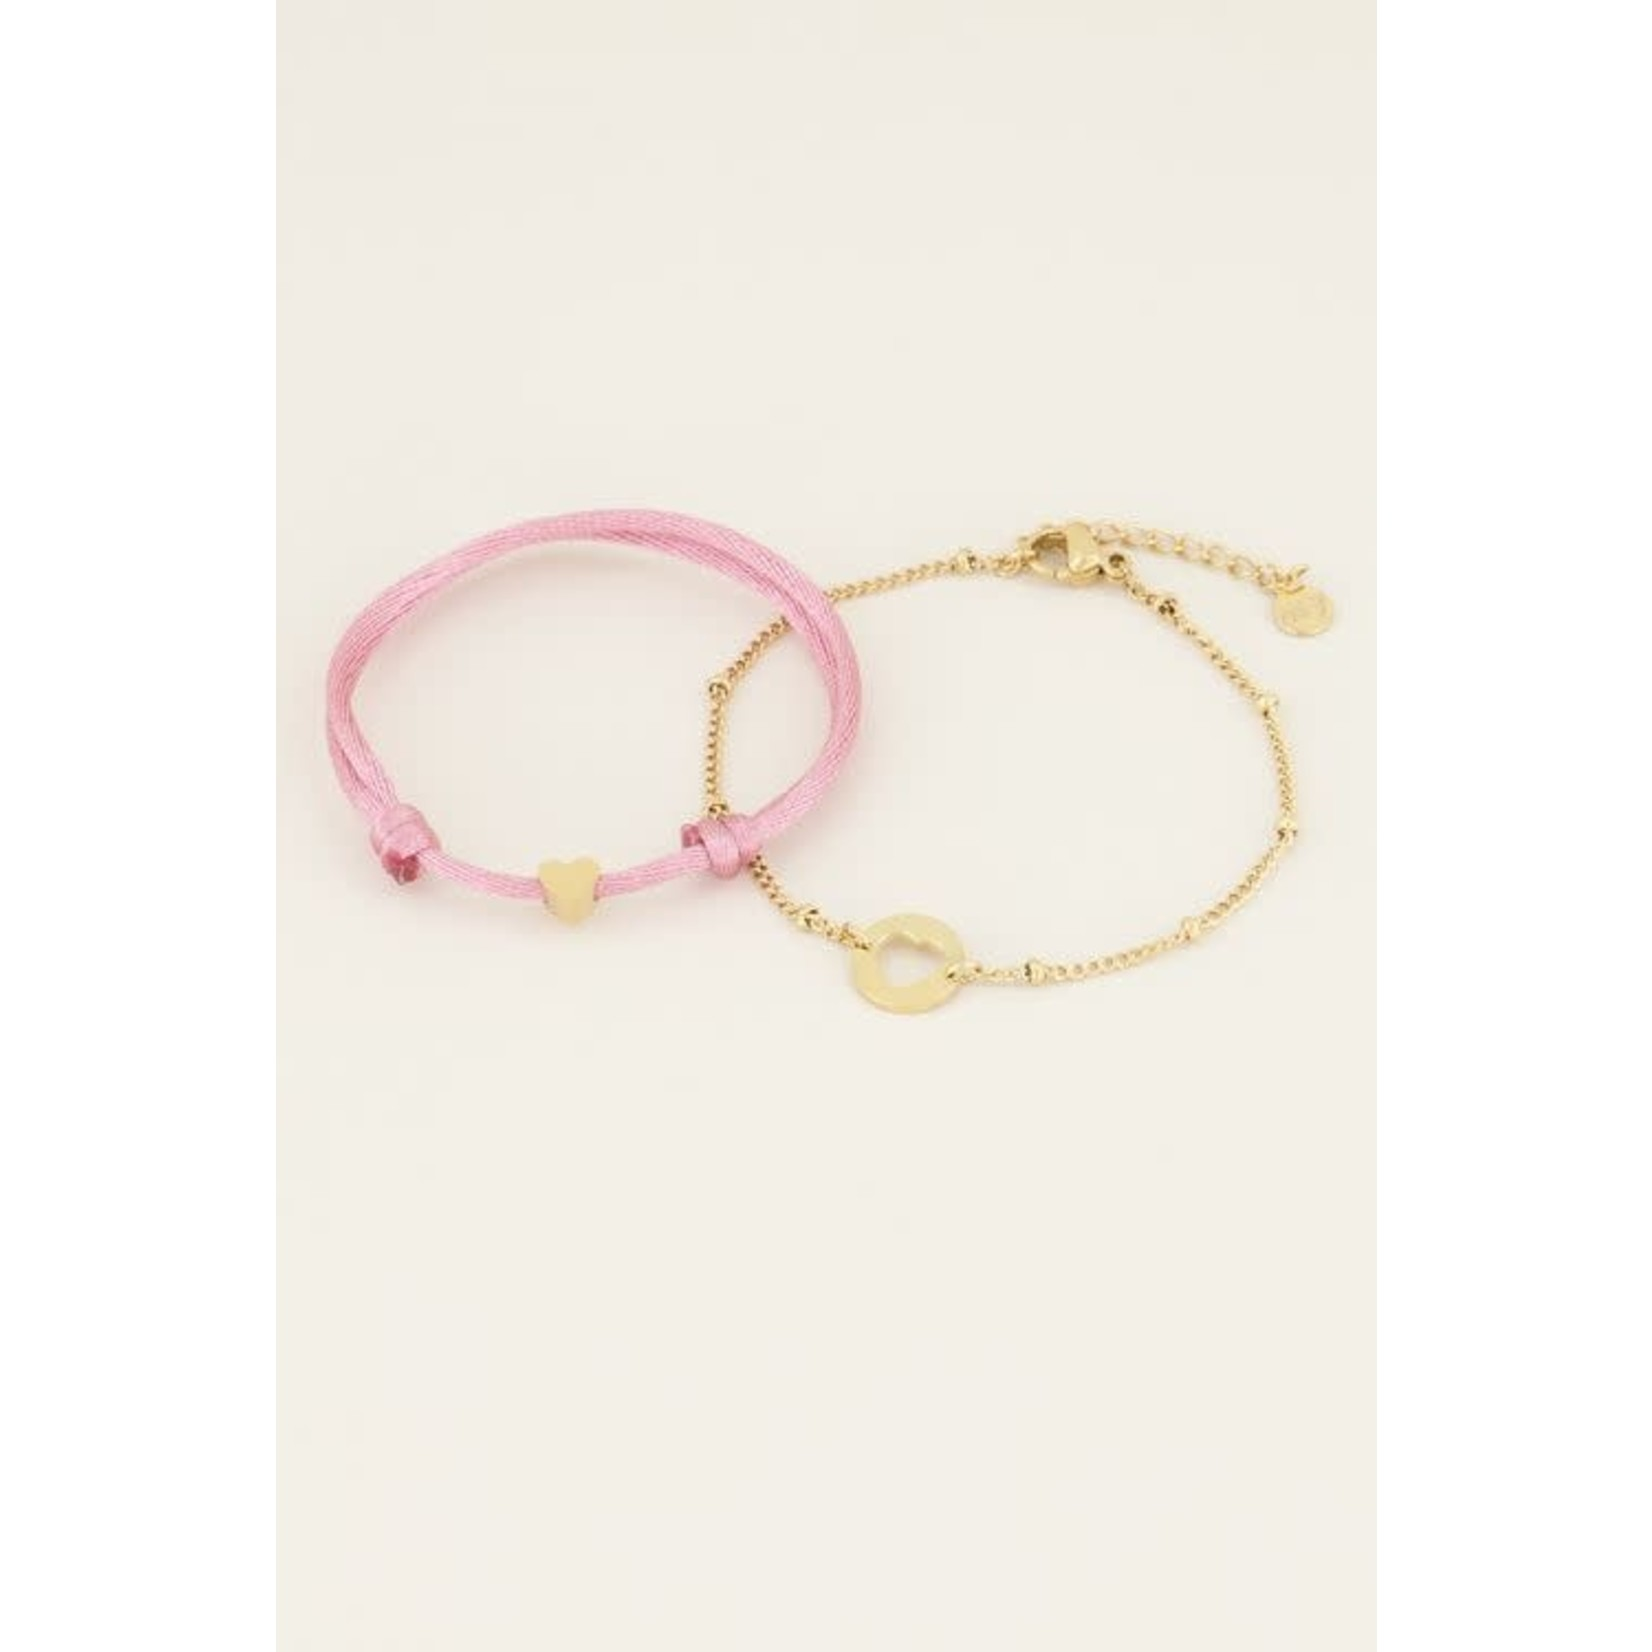 MyJewellery Moeder & dochter armband pink